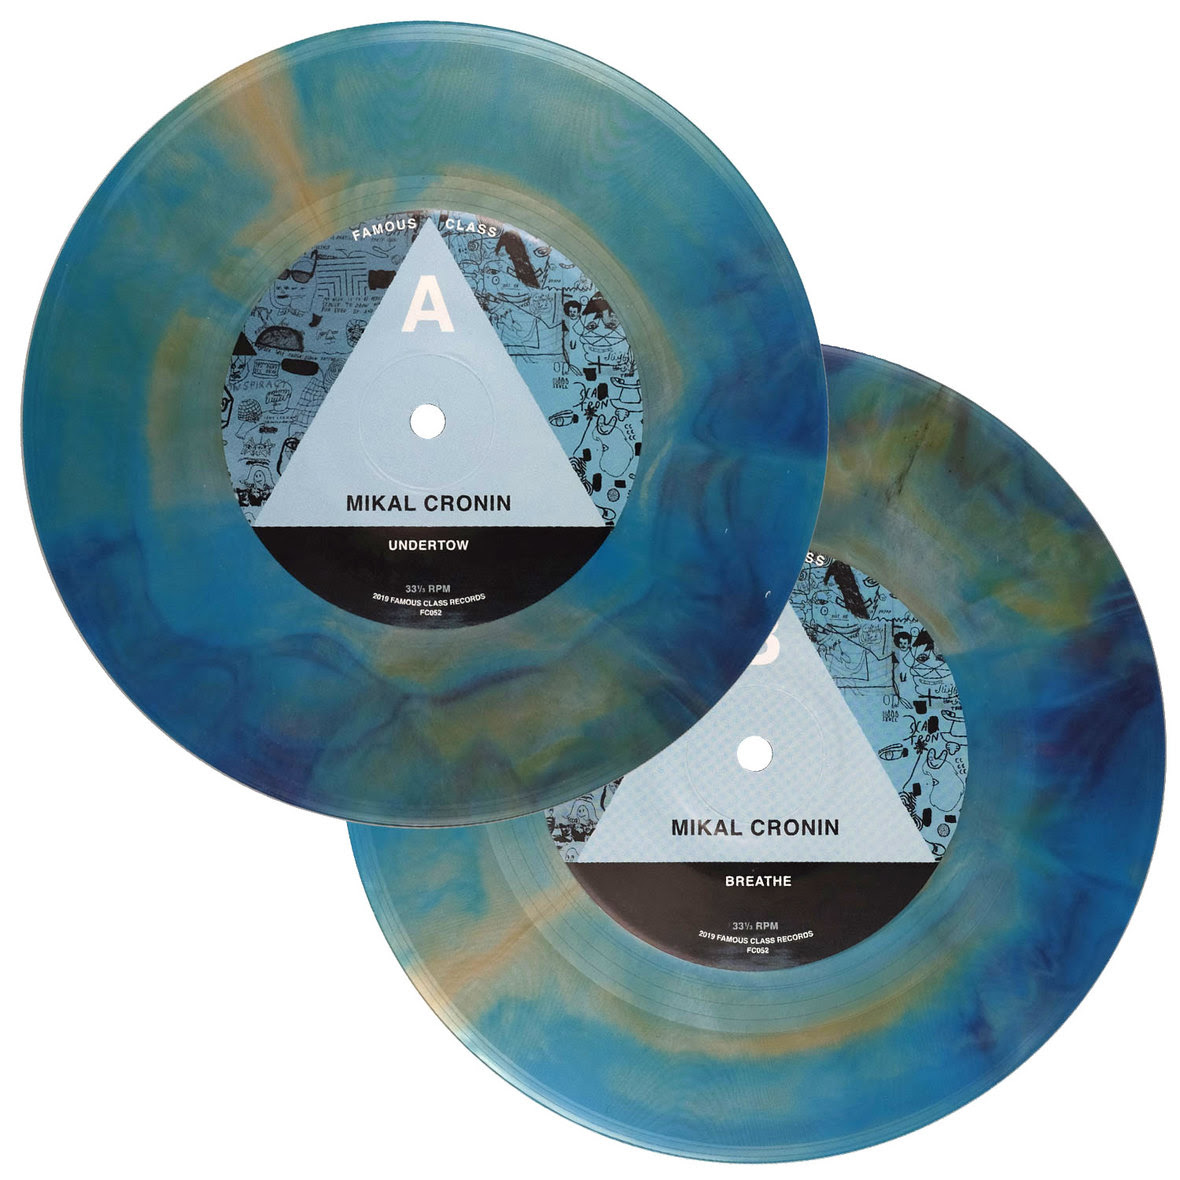 22Undertow22 bw 22Breathe22 Mikal Cronin color 7 inch vinyl 3 Mikal Cronin returns with new solo track Undertow: Stream